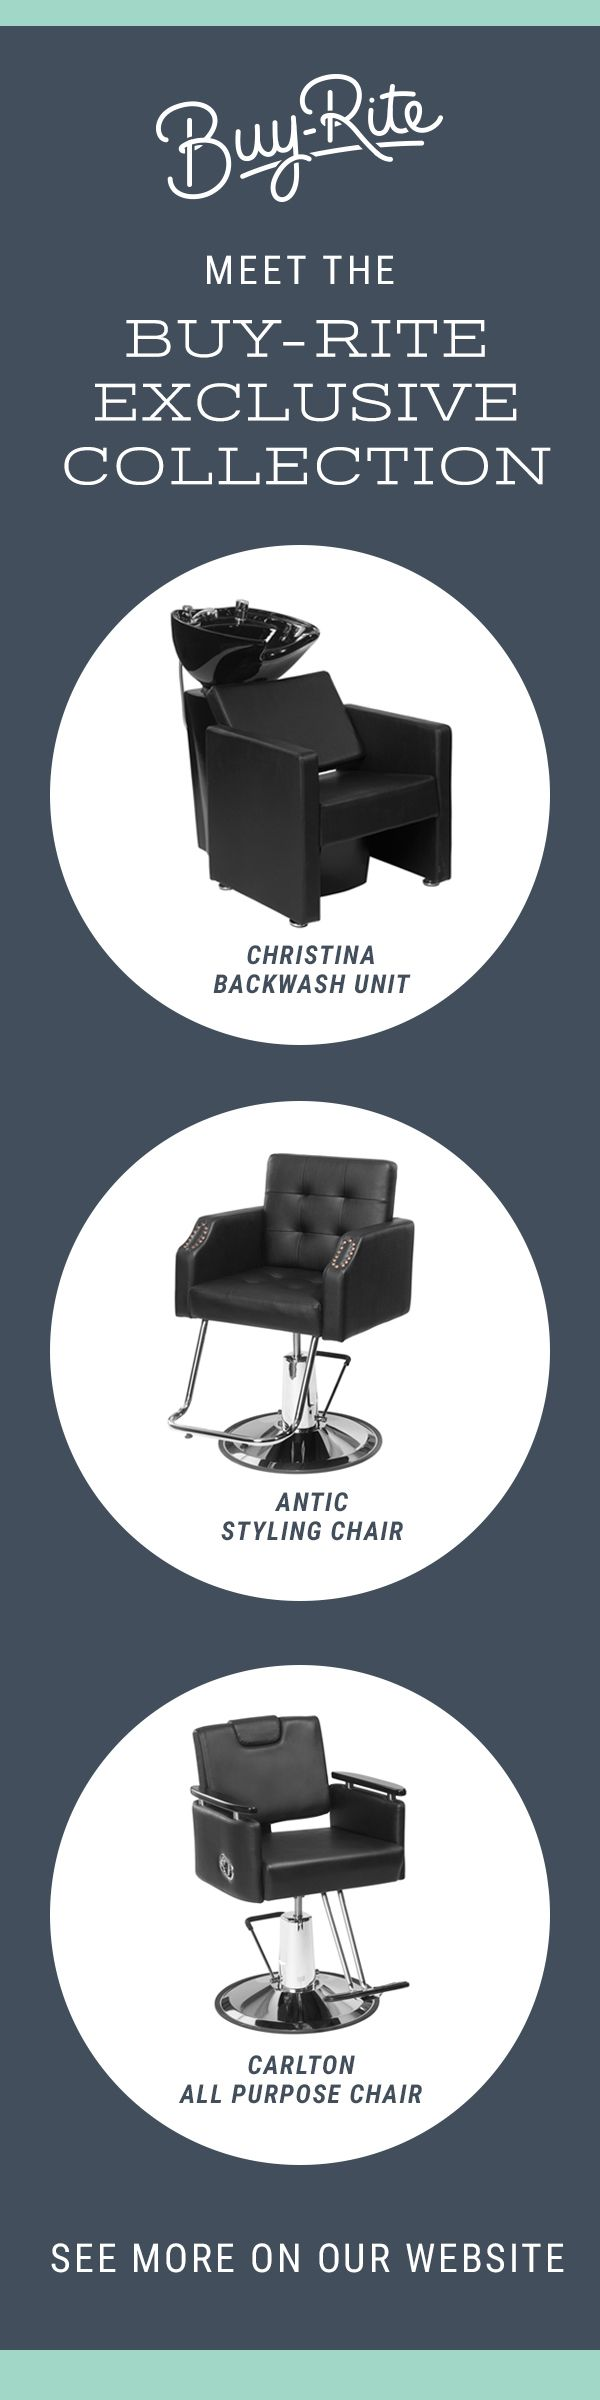 Find exclusive salon furniture at warehouse prices only on Buy-Rite Beauty.